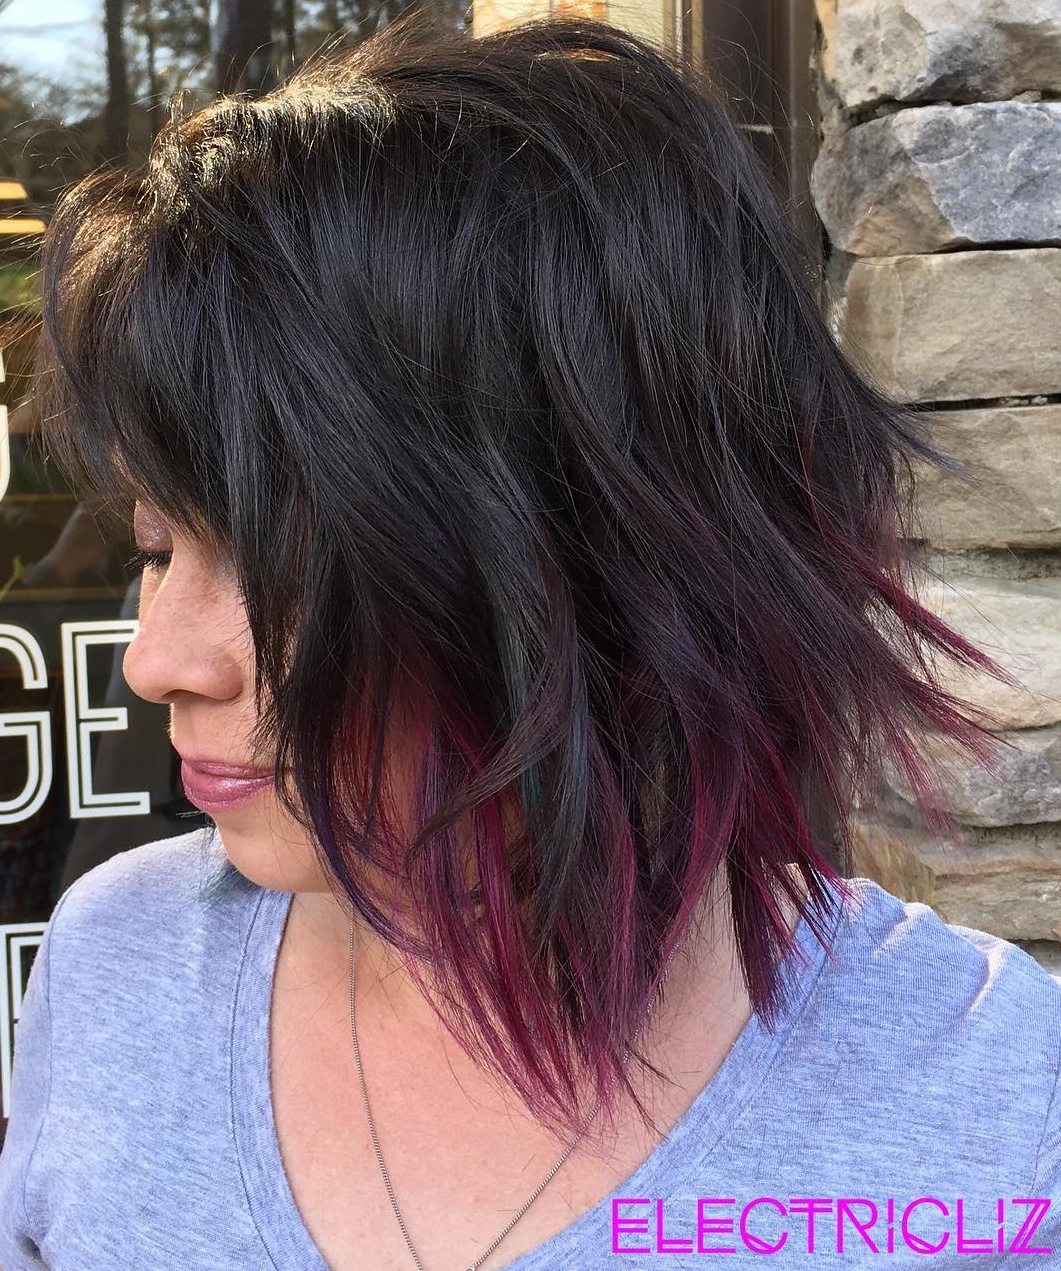 Shaggy Brunette Long Bob with Purple Ends for Thin Hair